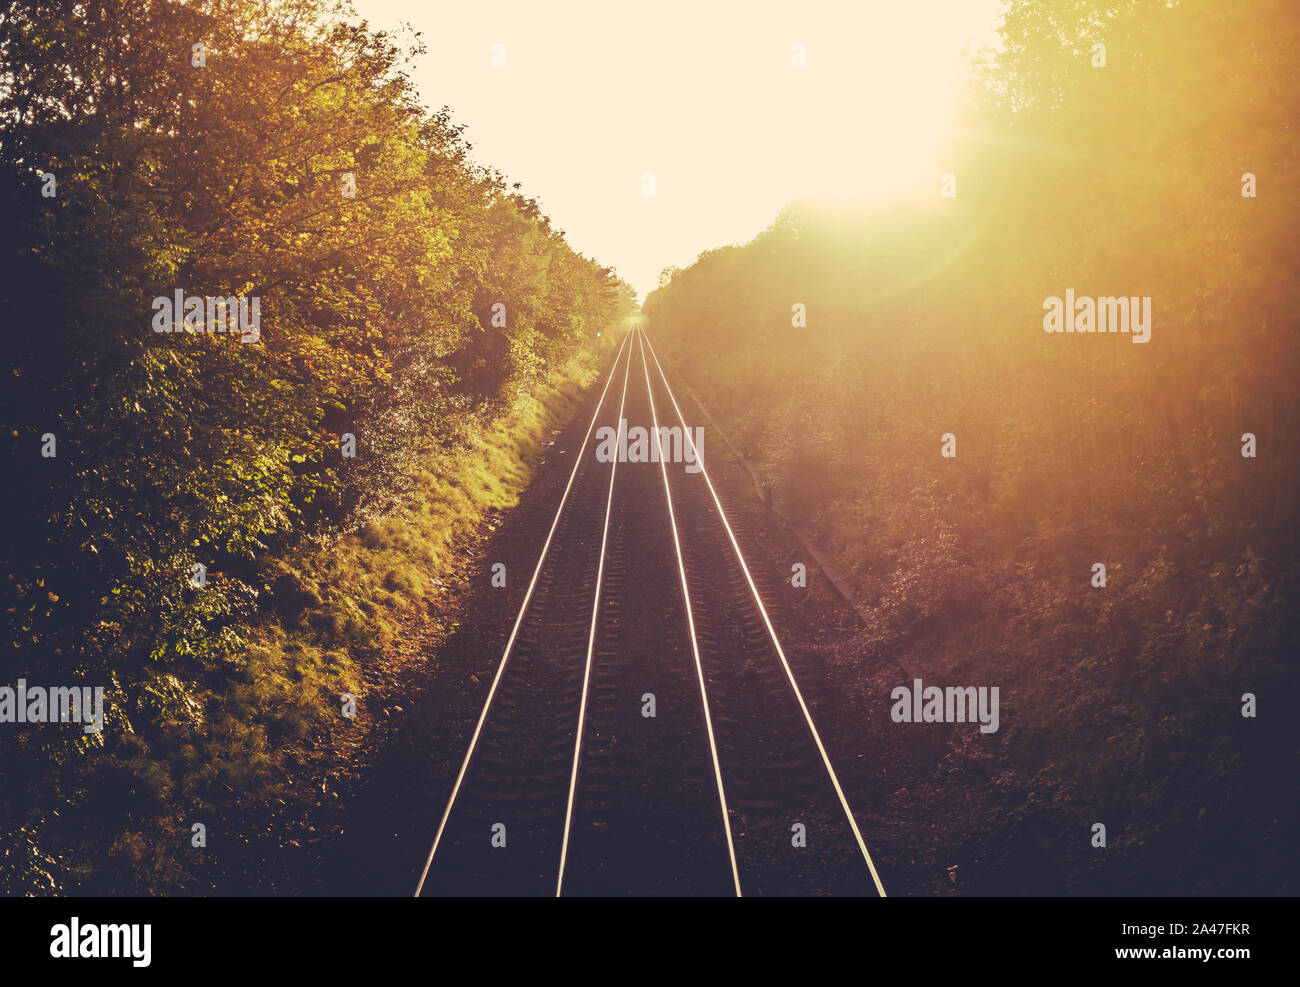 Train Tracks Stretching Into The Distance At Sunset Stock Photo